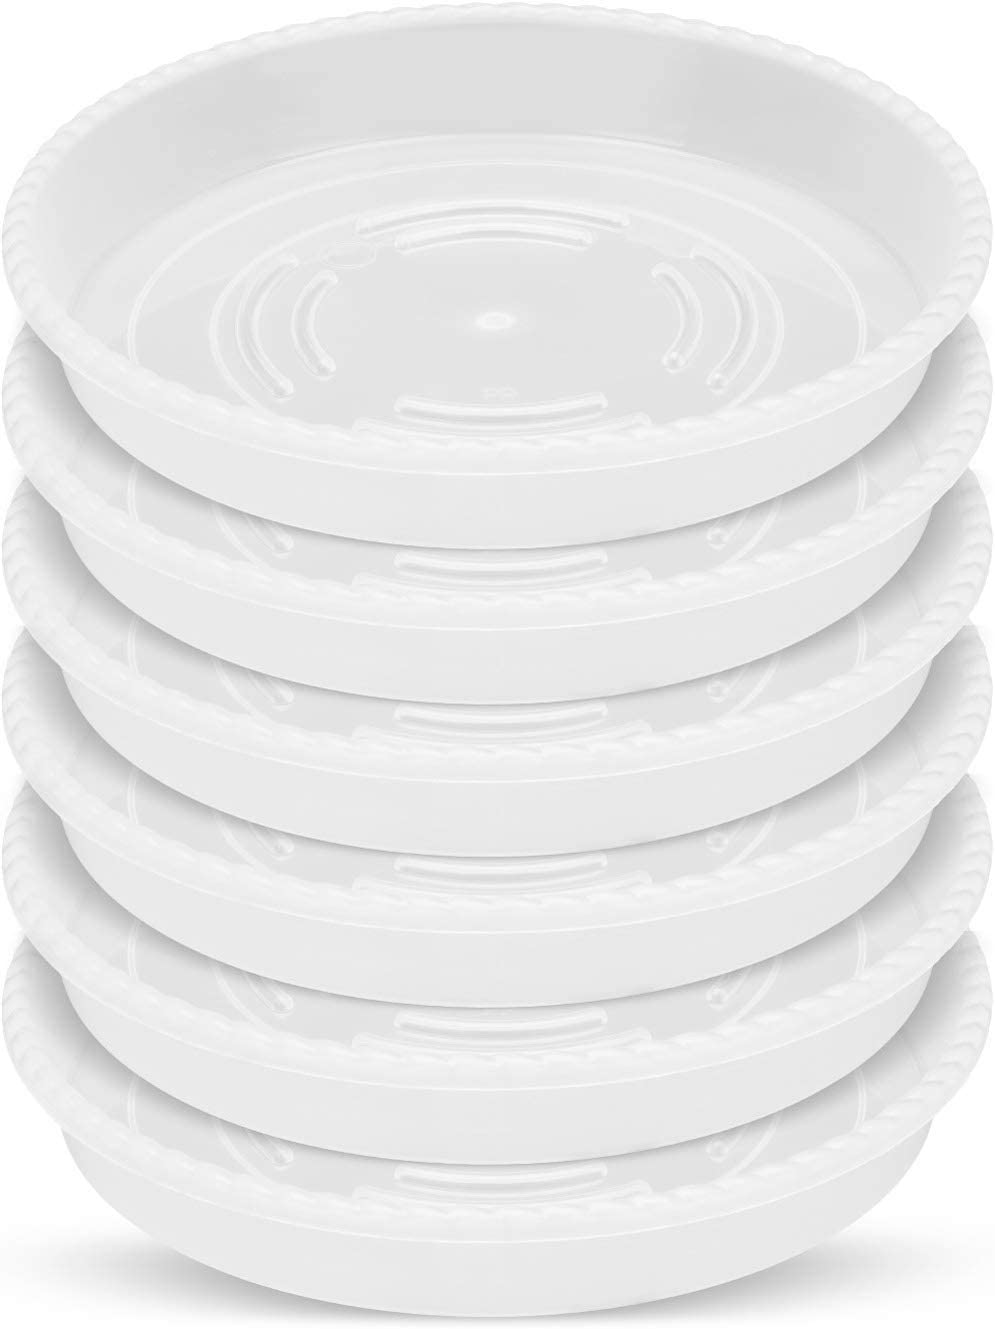 GROWNEER 12 Packs 10 Inches Thickened Clear Plant Saucer Drip Trays, with 15 Pcs Plant Labels, Plastic Round Plant Pot Saucers for Bedroom Living Room Porch Patio Indoor Outdoor Garden